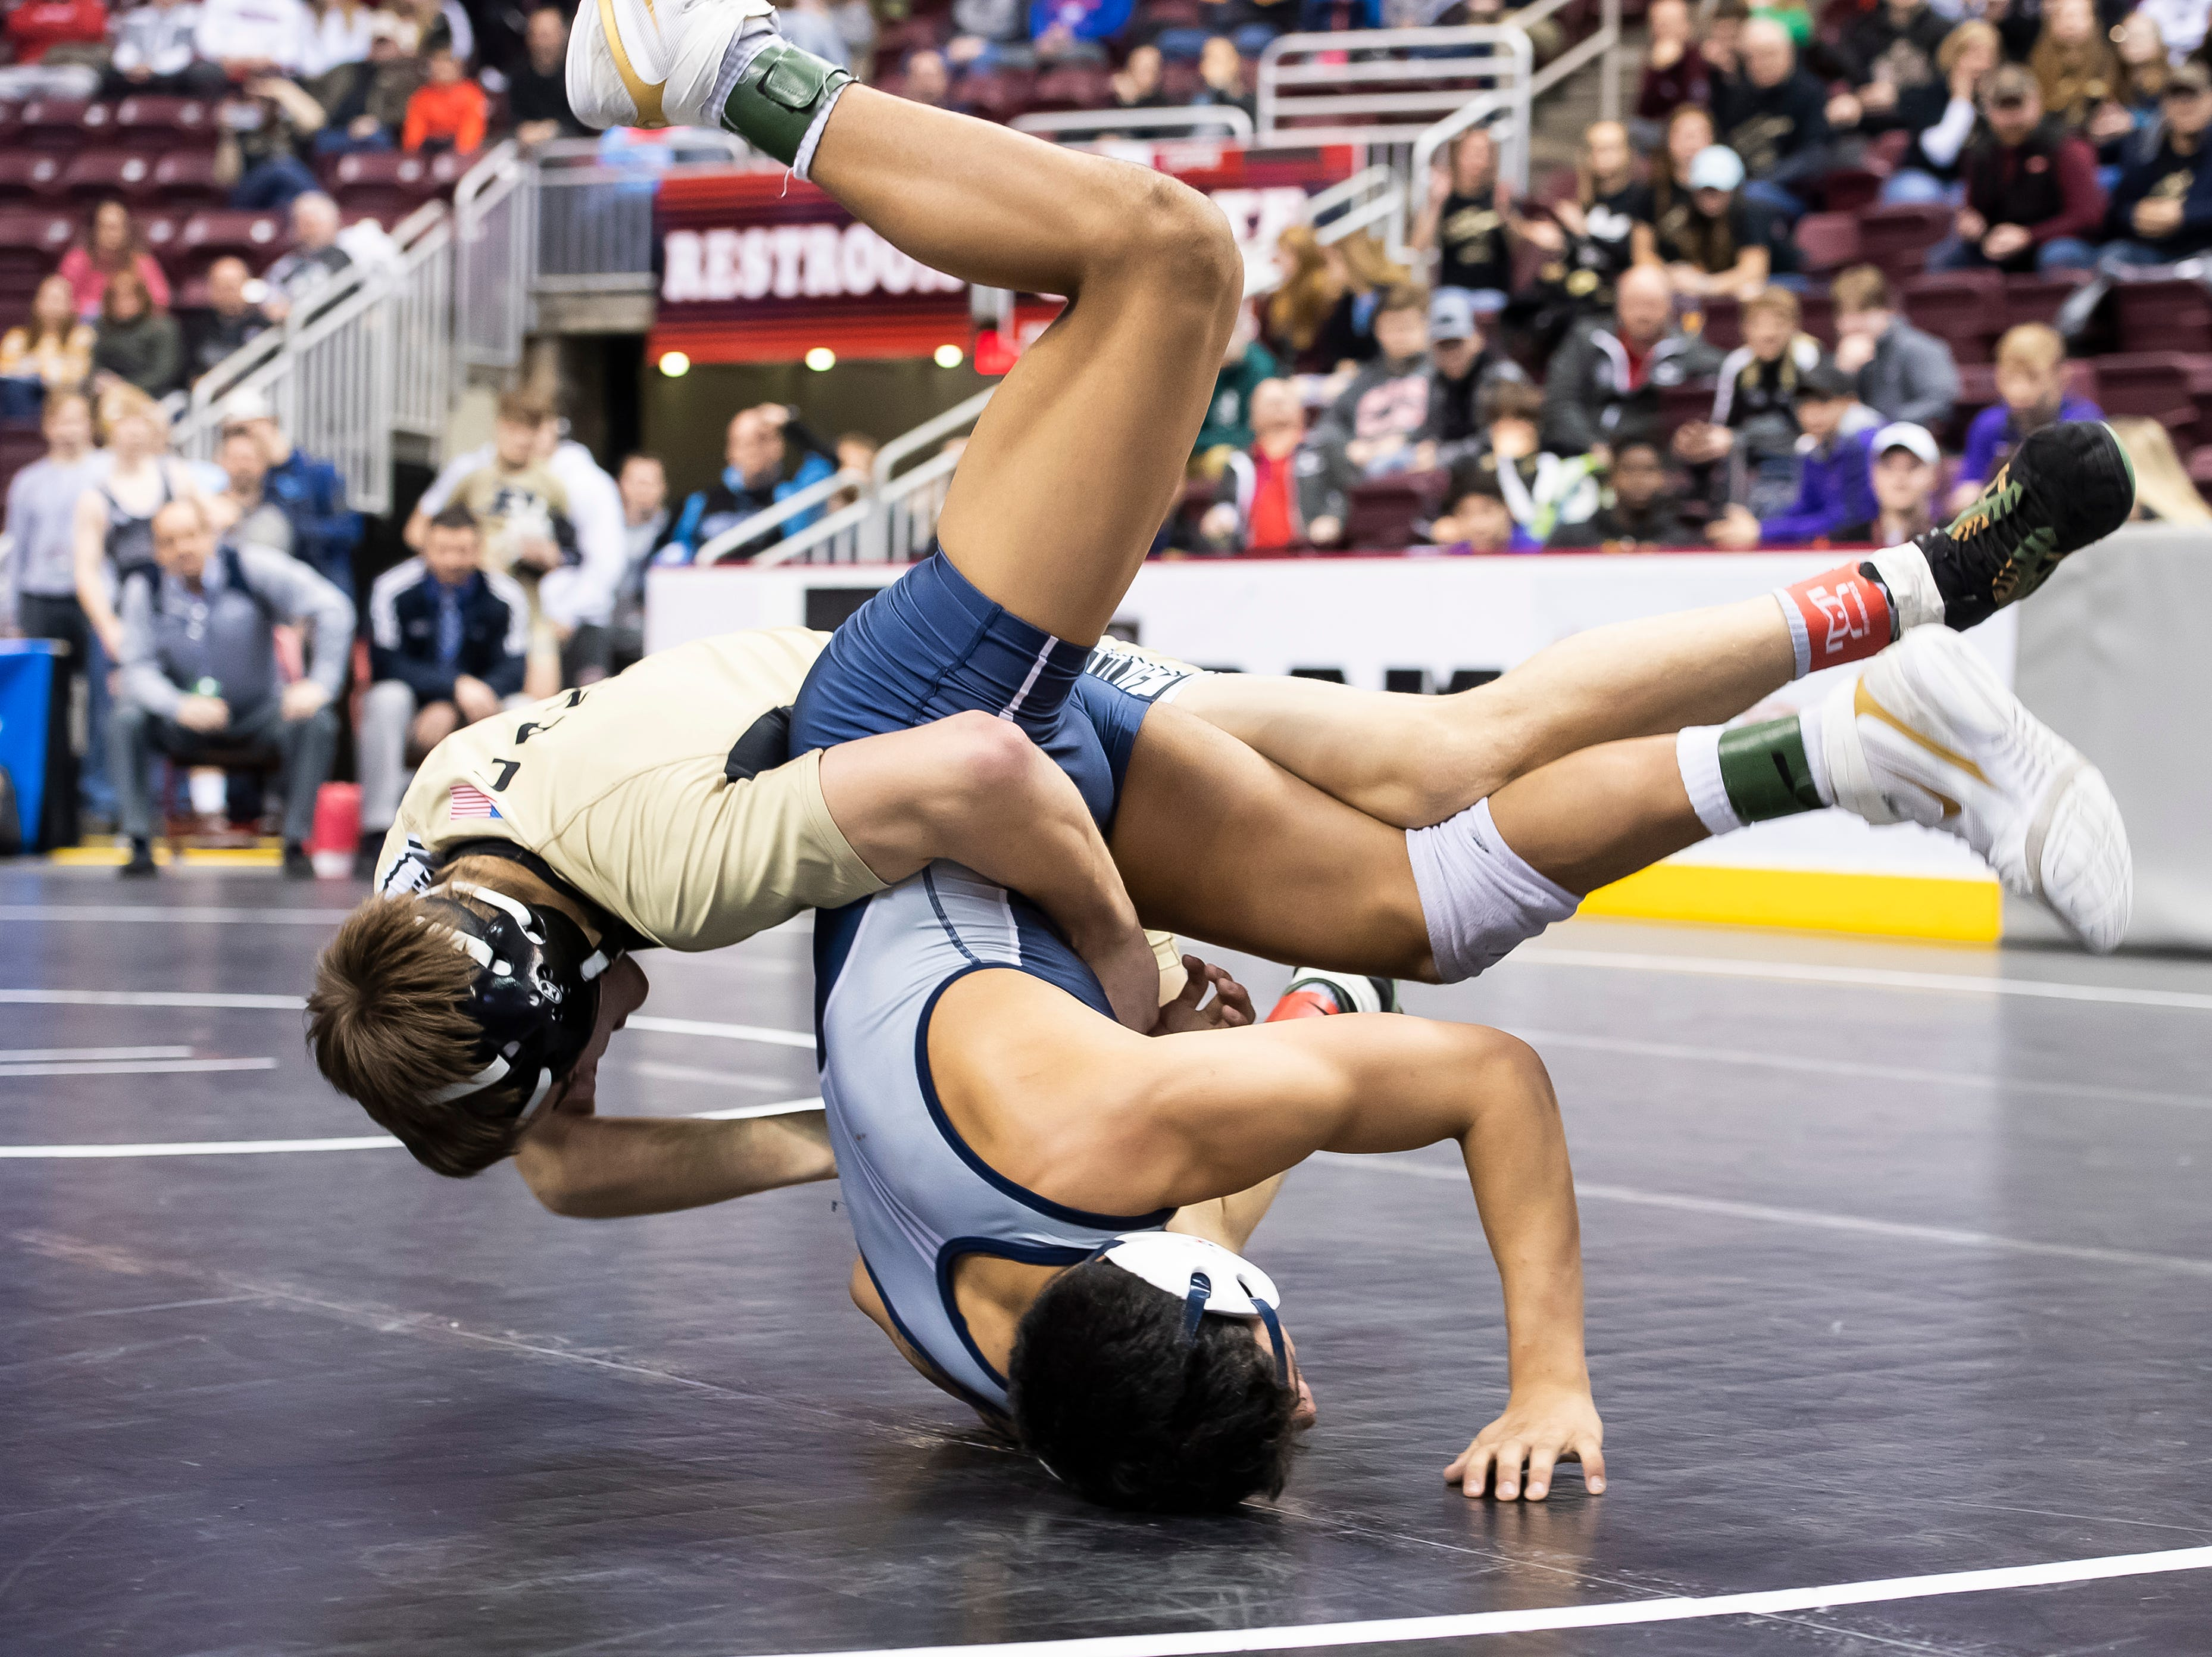 Biglerville's Eli Tuckey, top, wrestles Newport's Dorian Gonzalez during a 132-pound second round consolation bout at the Giant Center in Hershey Friday, March 8, 2019. Tuckey won in sudden victory 9-7.